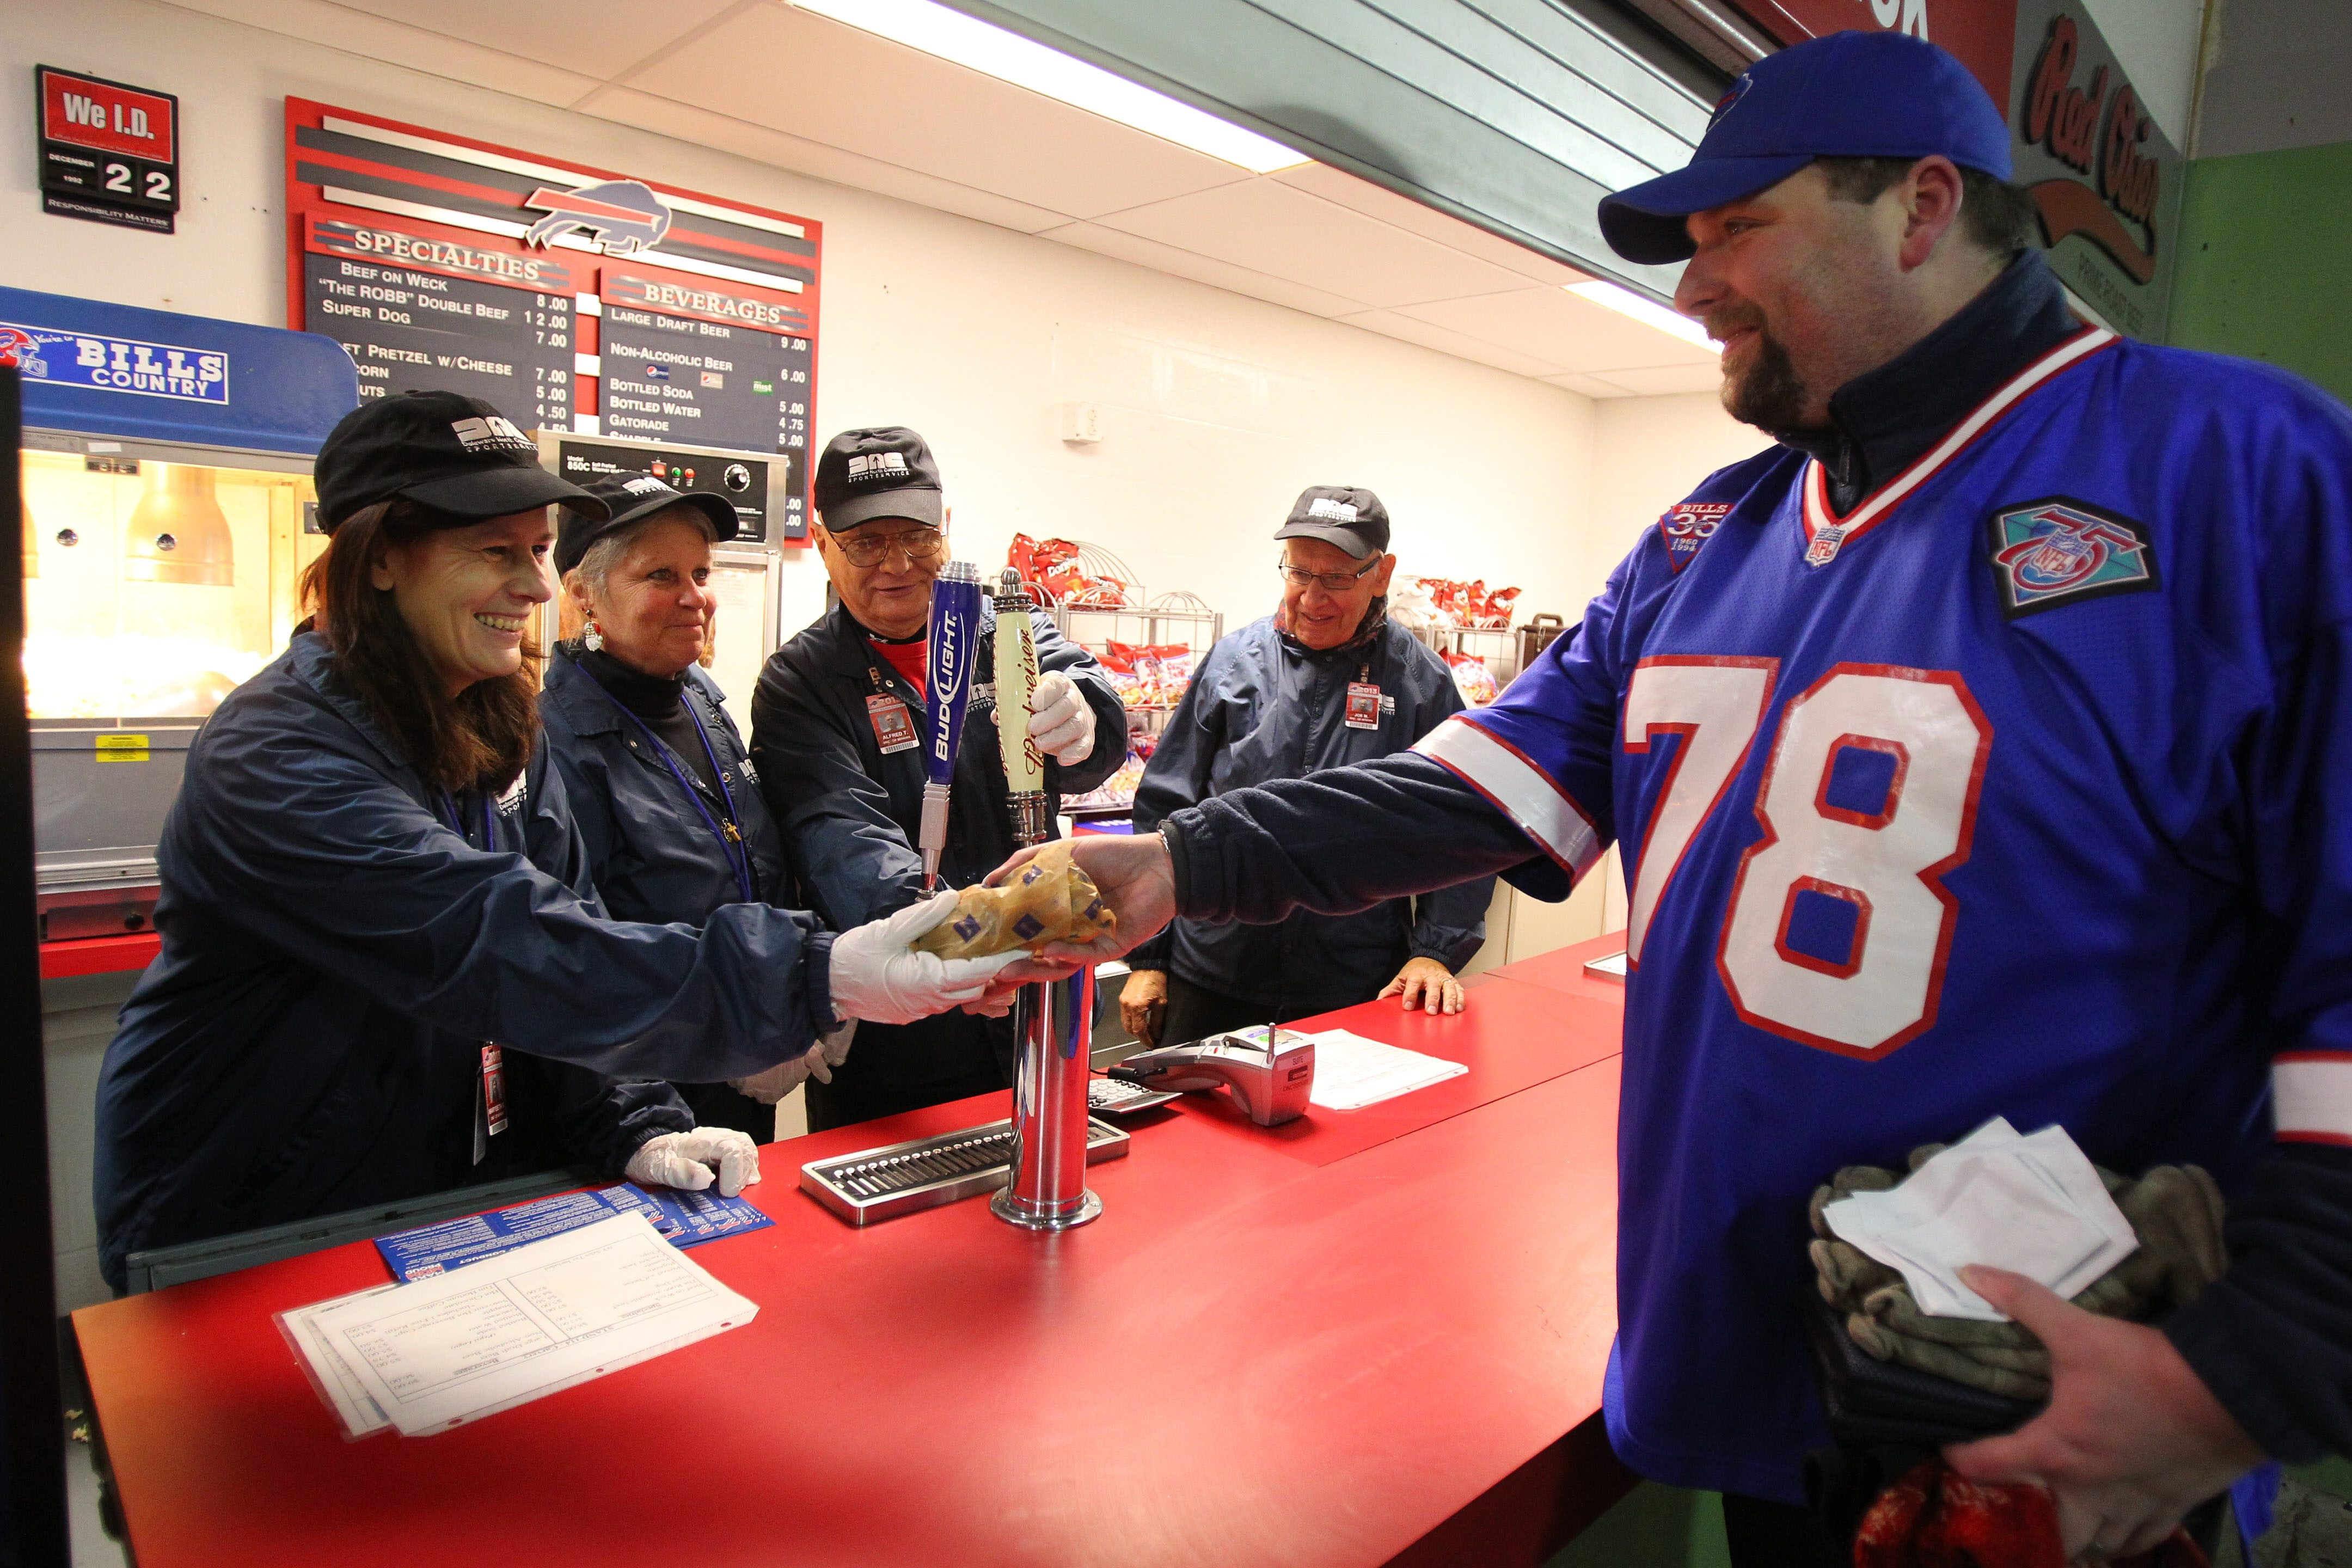 Ryan Harrison, right, is helped by, from left to right, Mary Beth Van Lew, Barb Rotino, Al Szymanski and Joe Manuel at stand 114 in Ralph Wilson Stadium in Orchard Park on Sunday.